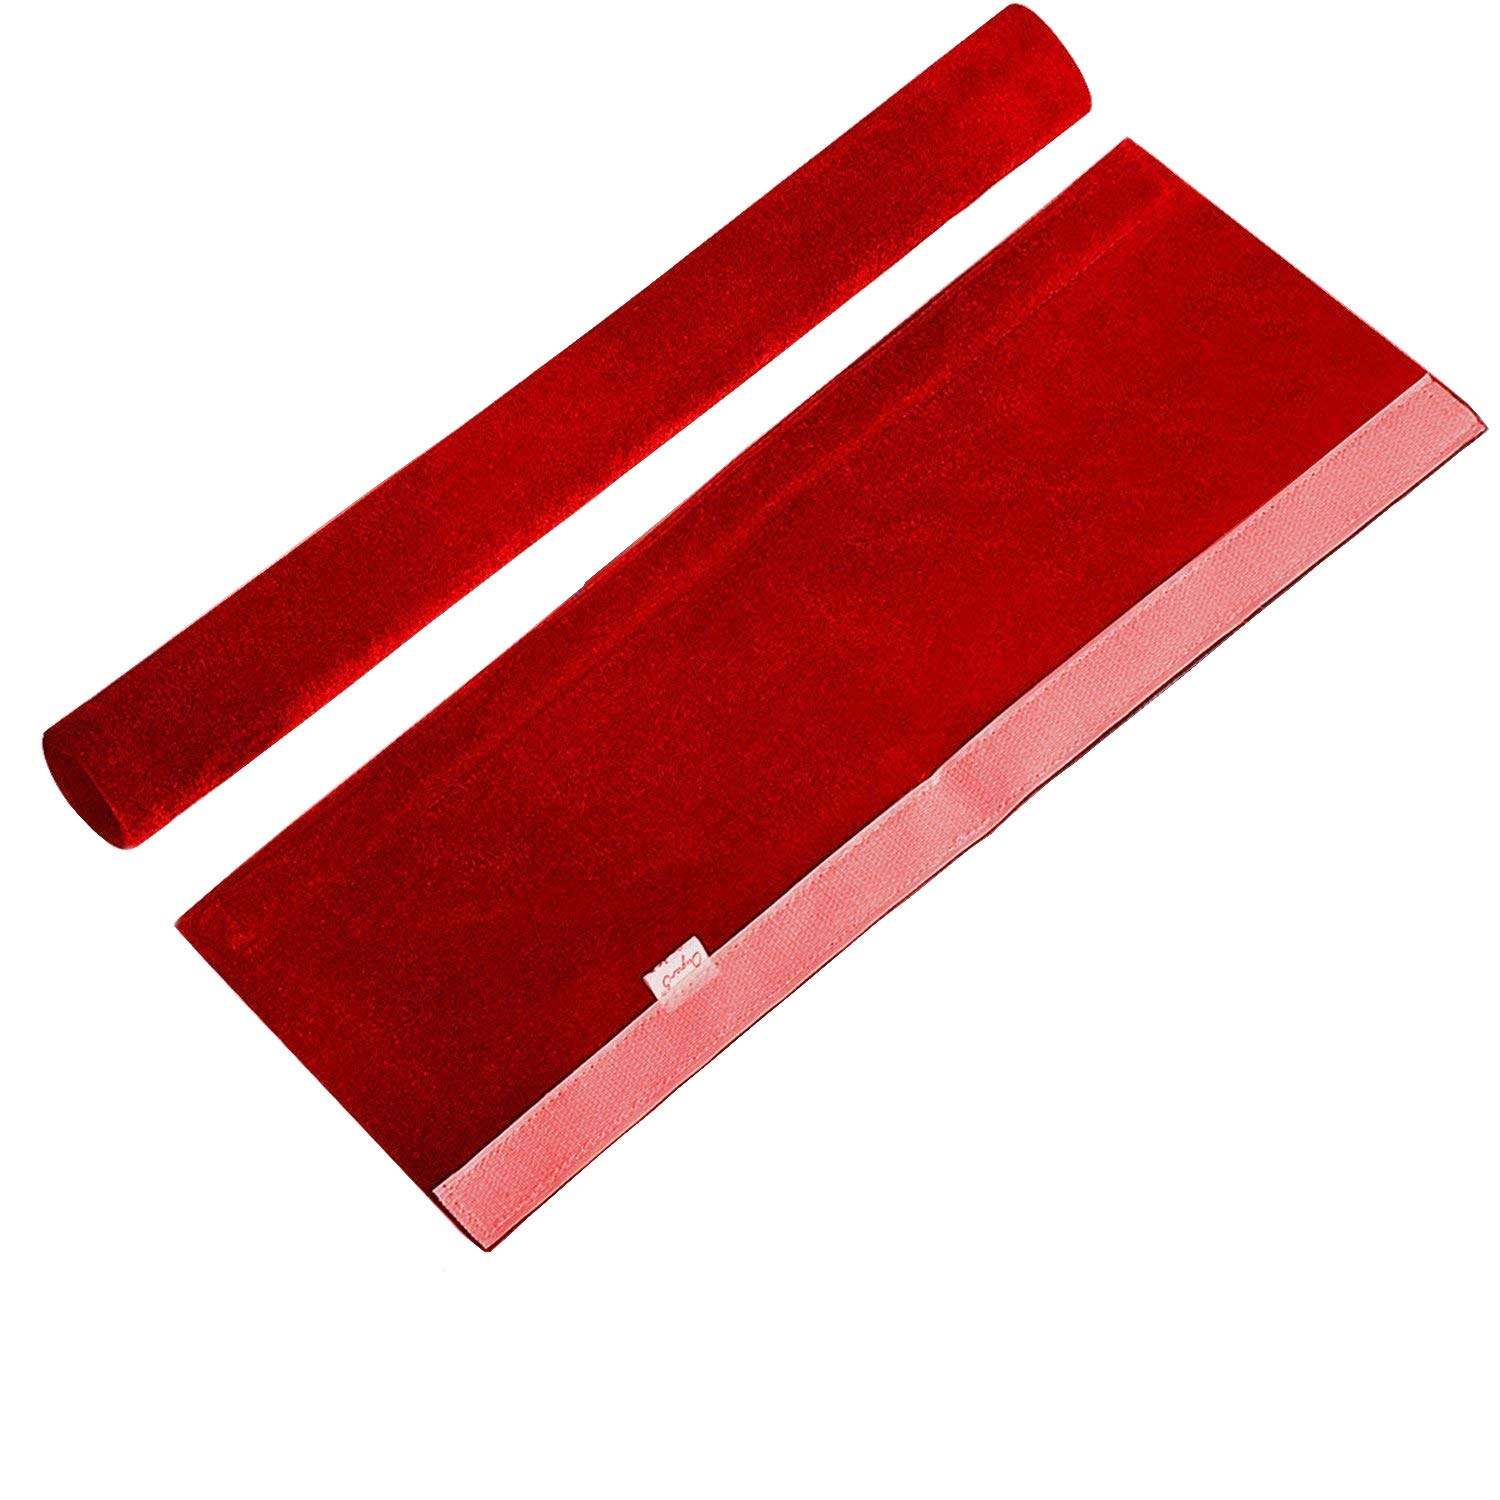 "OUGAR8 Microwave Door Handle Covers,Keep Your Kitchen Appliance Clean From Fingertips&Food Stains,Perfect For Oven,Dishwasher(6""L3.5""W,Burgundy)"